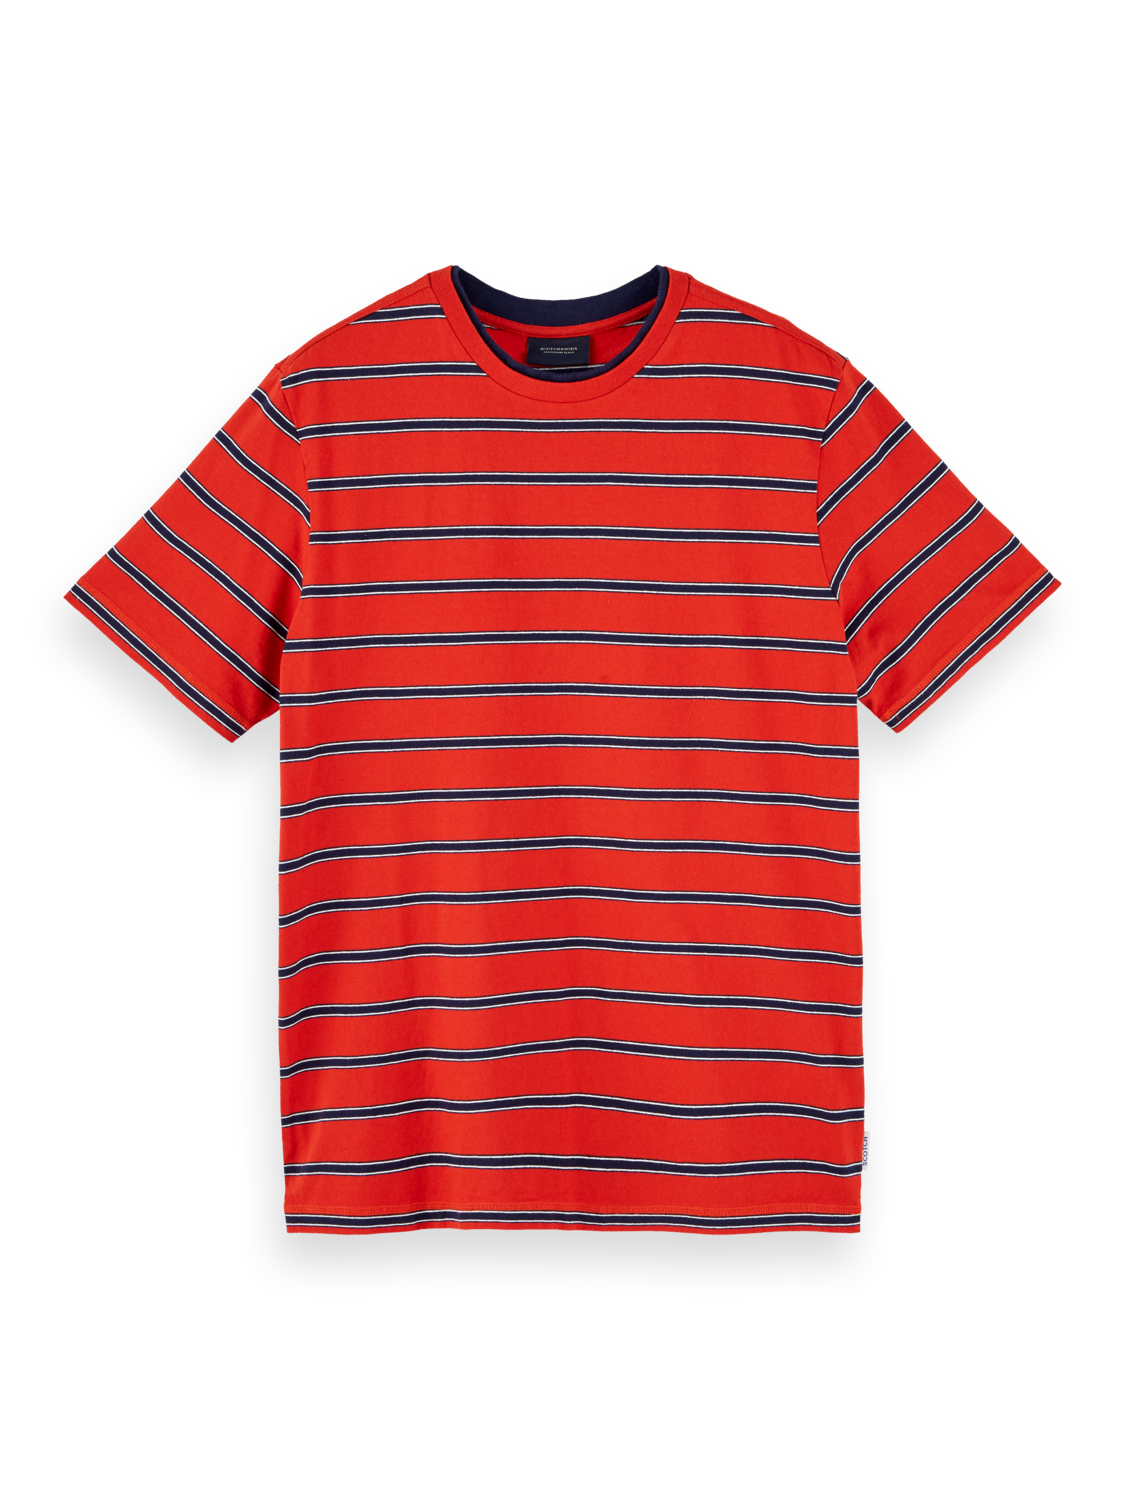 Men 100% cotton striped short sleeve t-shirt